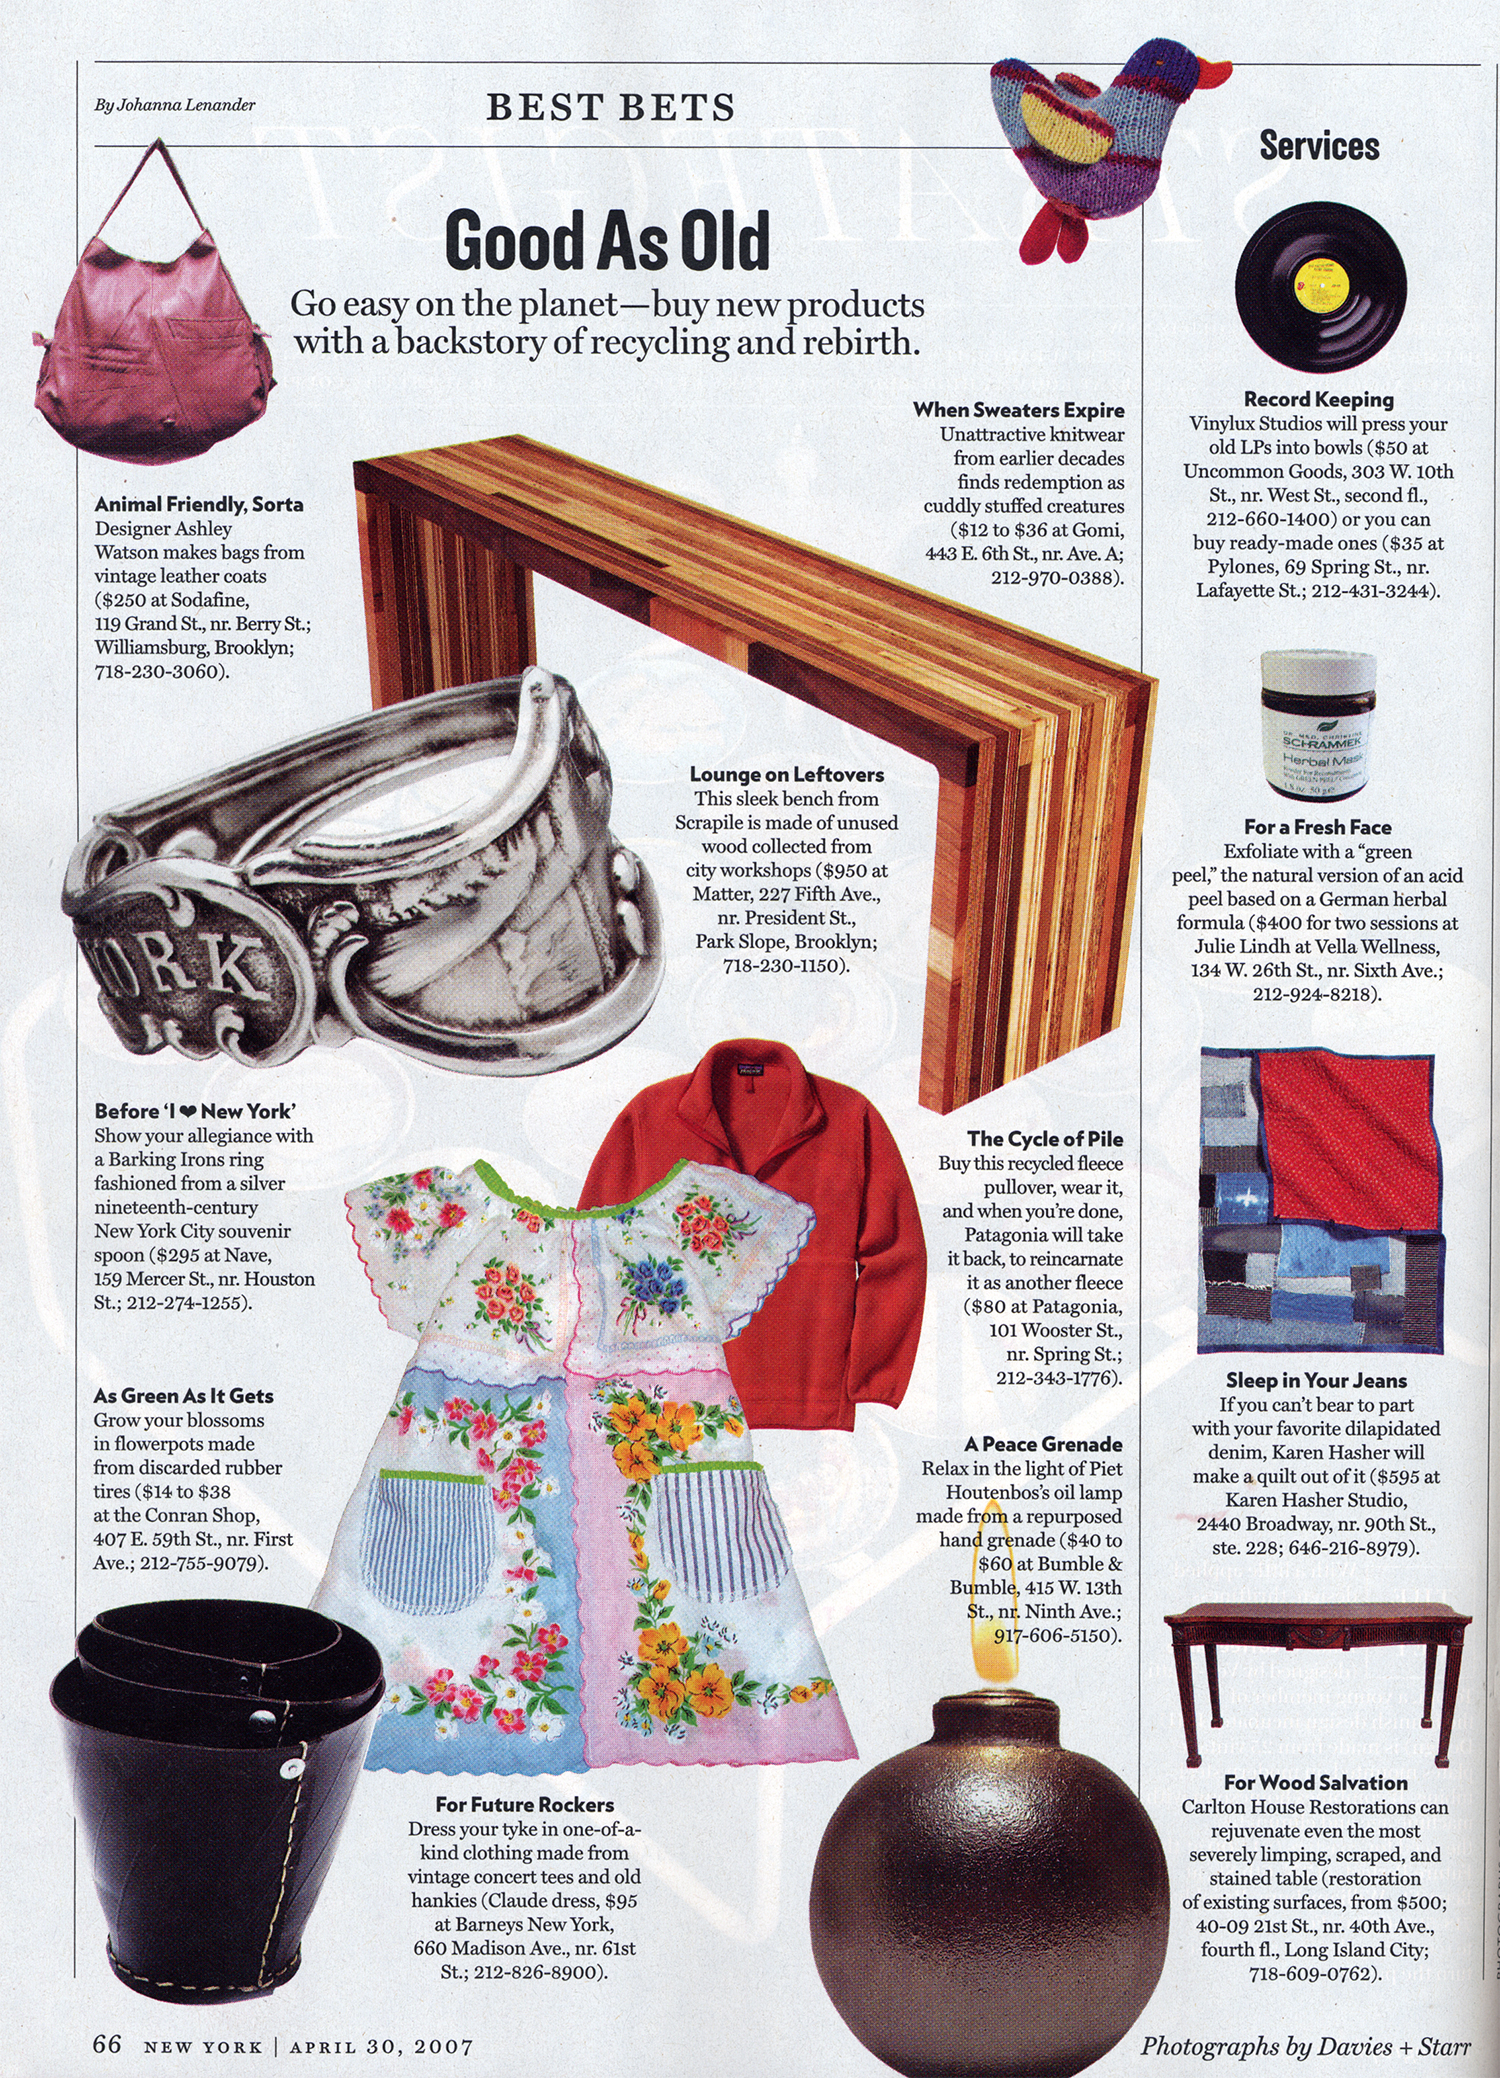 Hand Grenade Oil Lamps featured in New York Magazine's 'Best Bets' section.